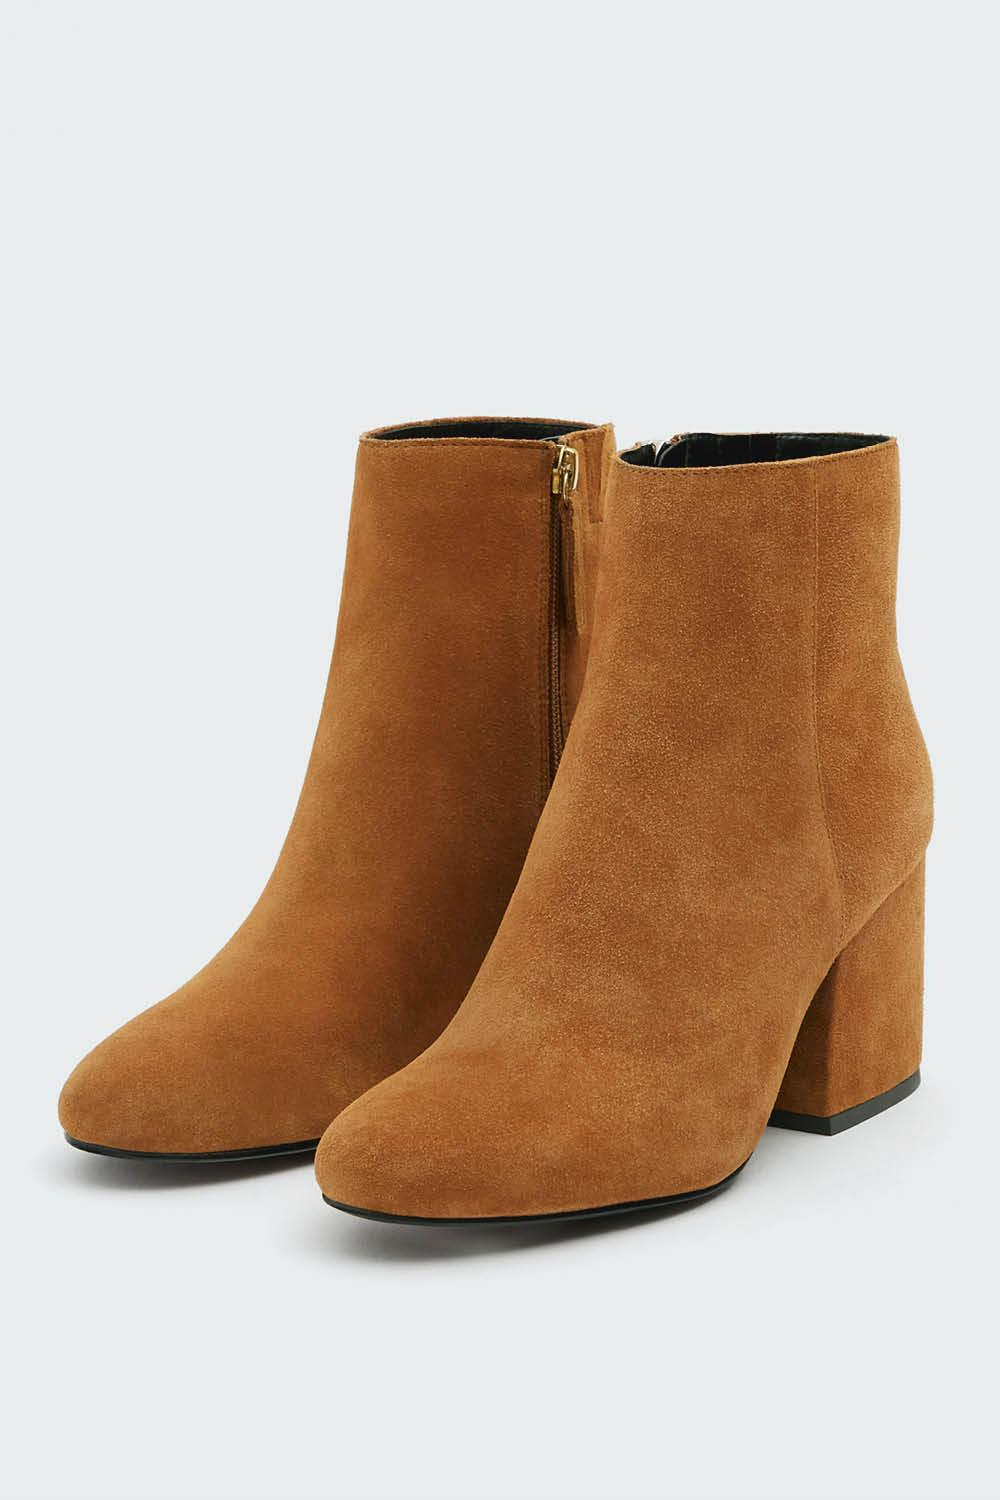 botin serraje marron pull and bear 39,99 euros. Pon color a tus looks